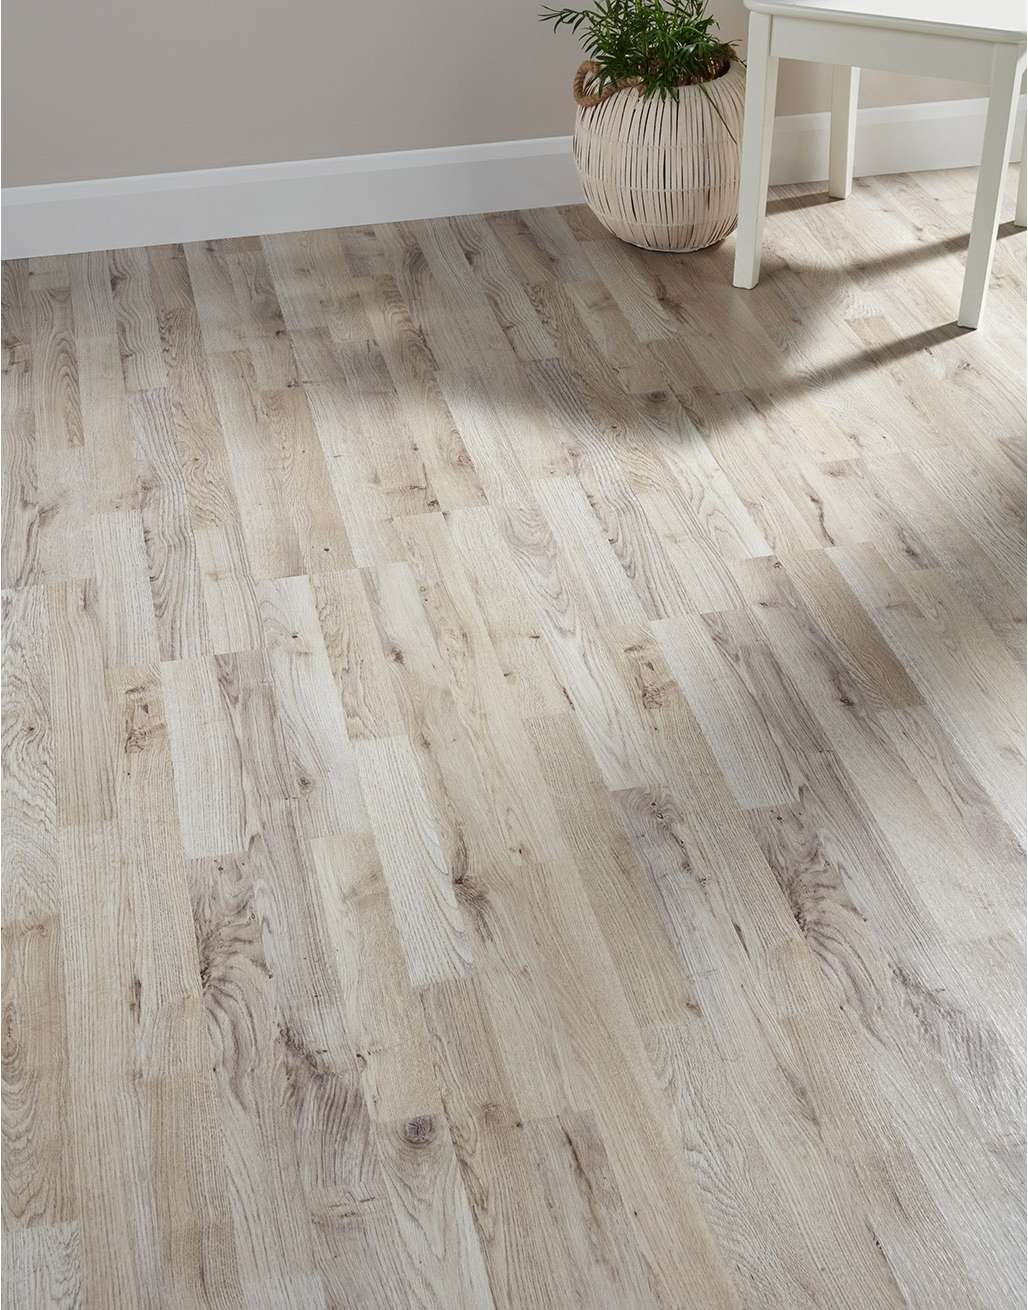 Why Should Not You Choose Laminate Flooring Material